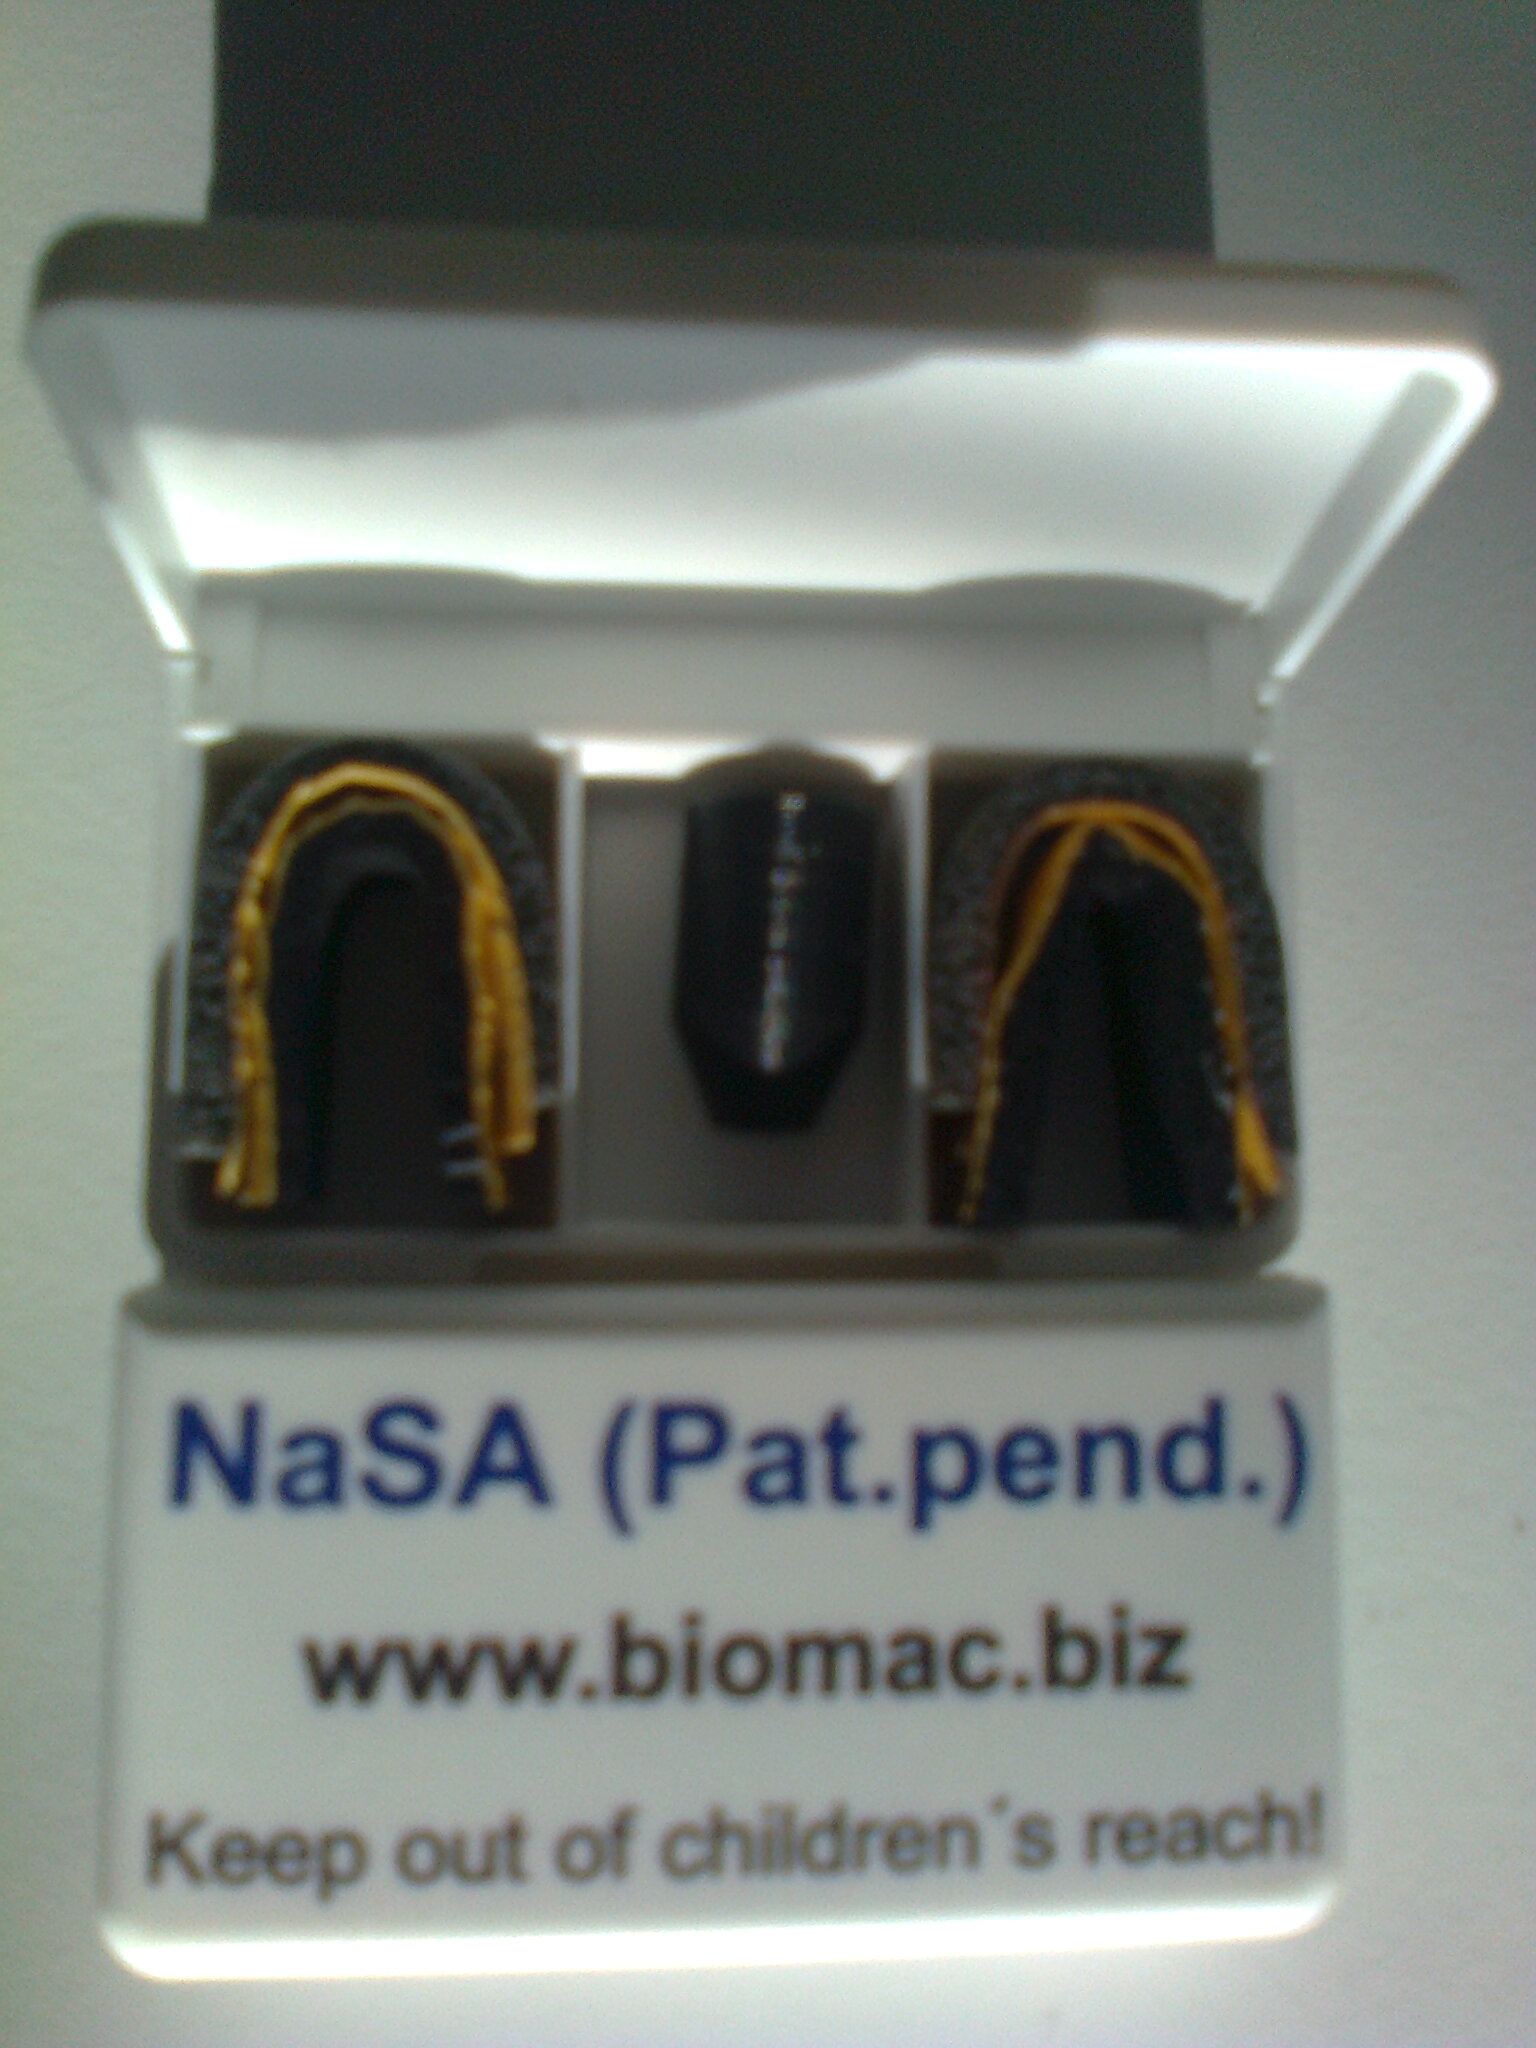 NaSA-valve in box